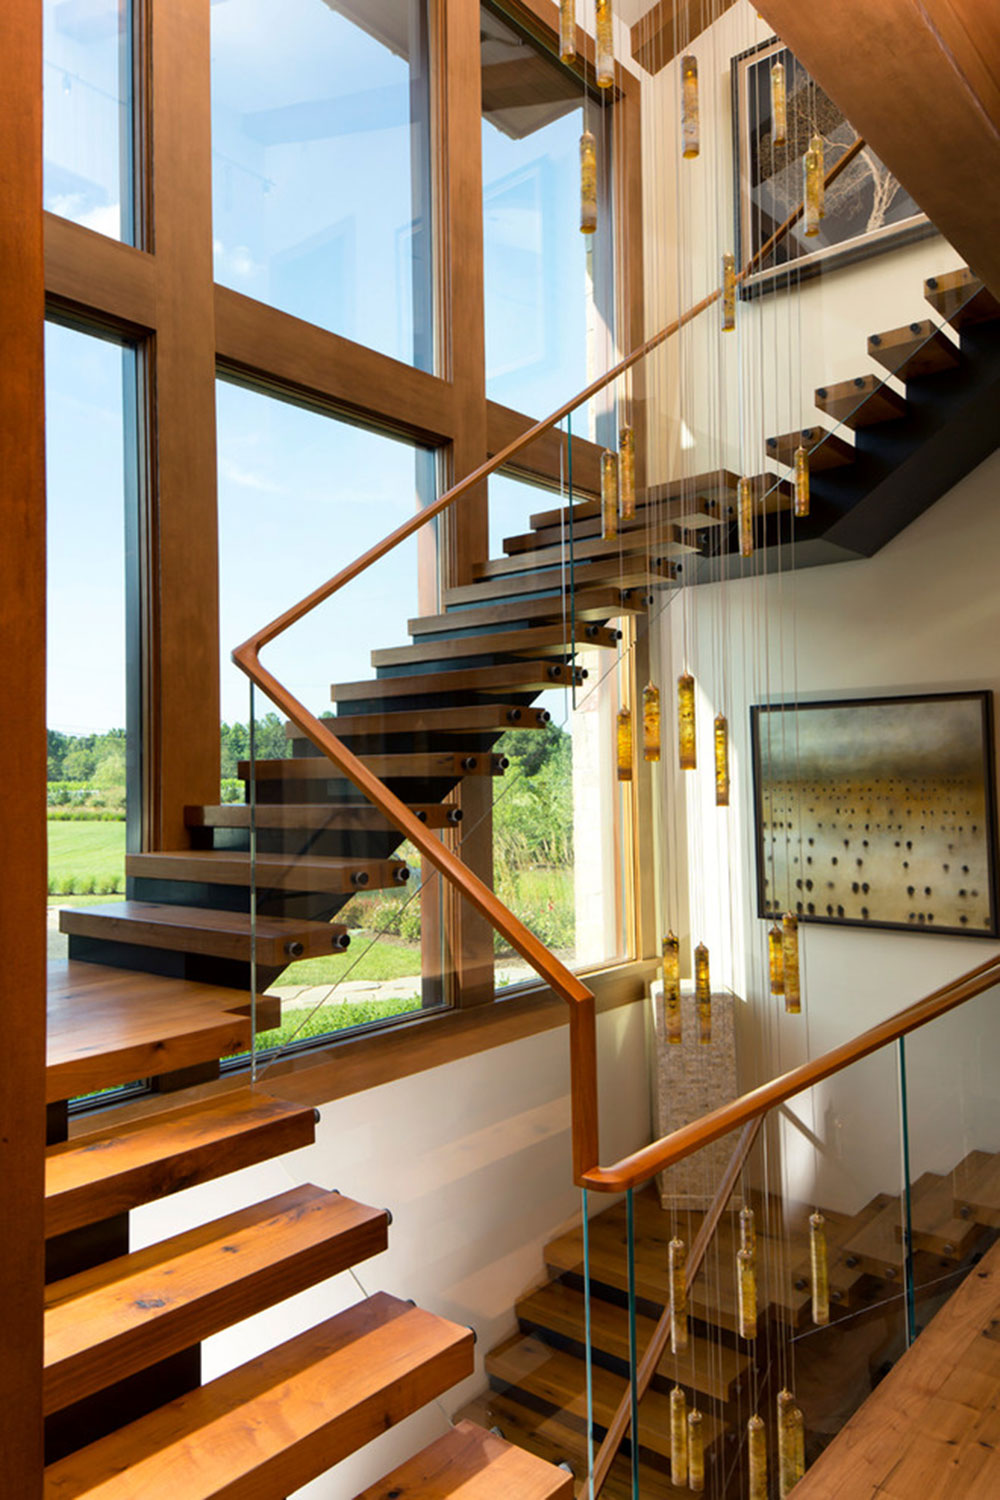 Modern and Exquisite Floating Staircase4 Modern and exquisite floating staircase designs